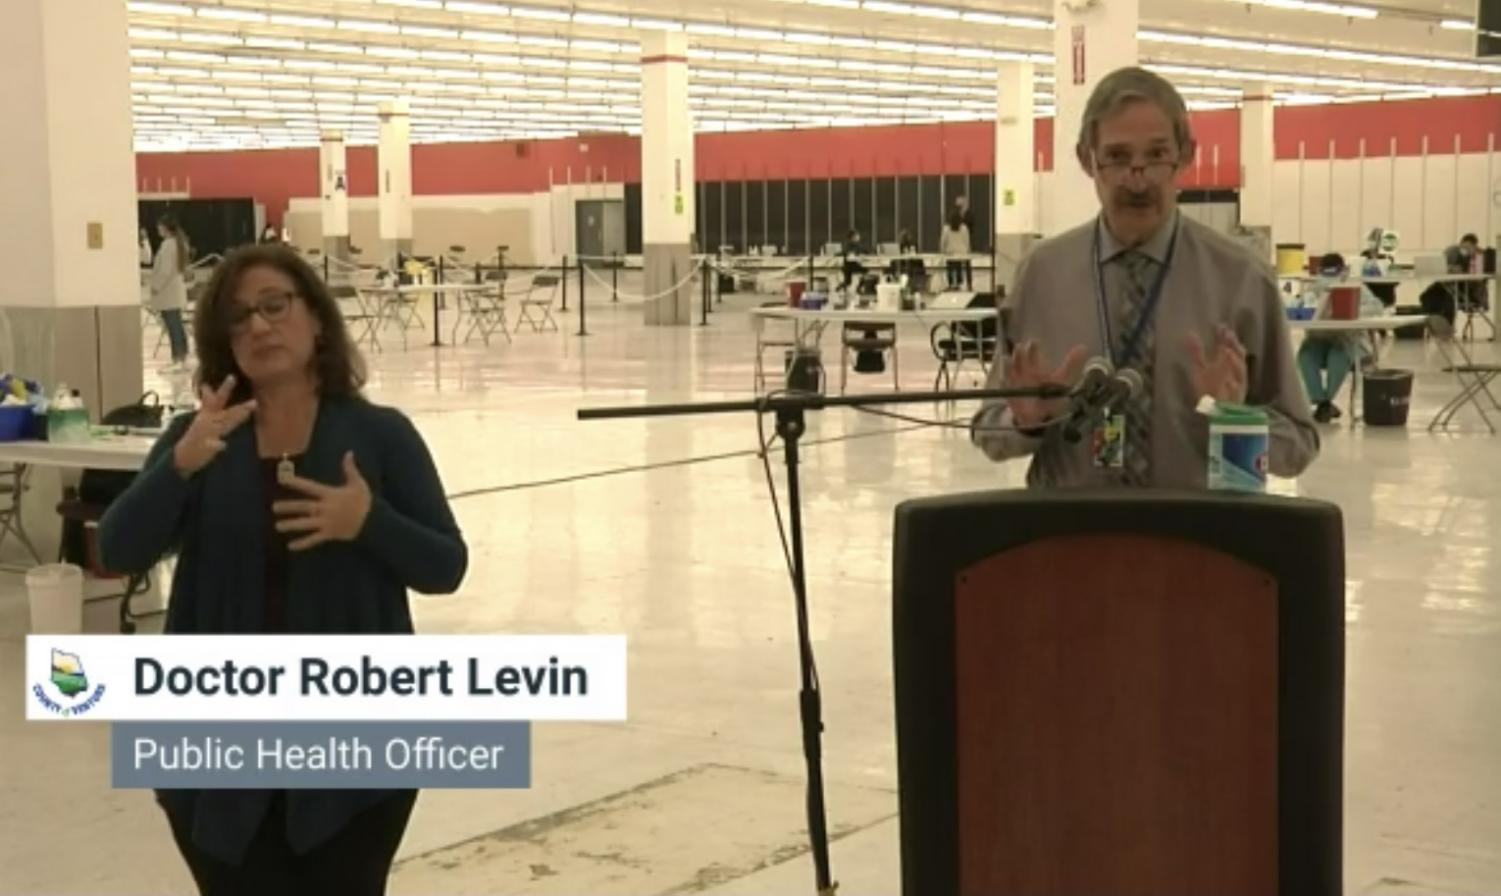 Public Health Officer, Doctor Robert Levin, speaking at Wednesday's COVID-19 press conference in Santa Paula, CA. On March 24, 2021.